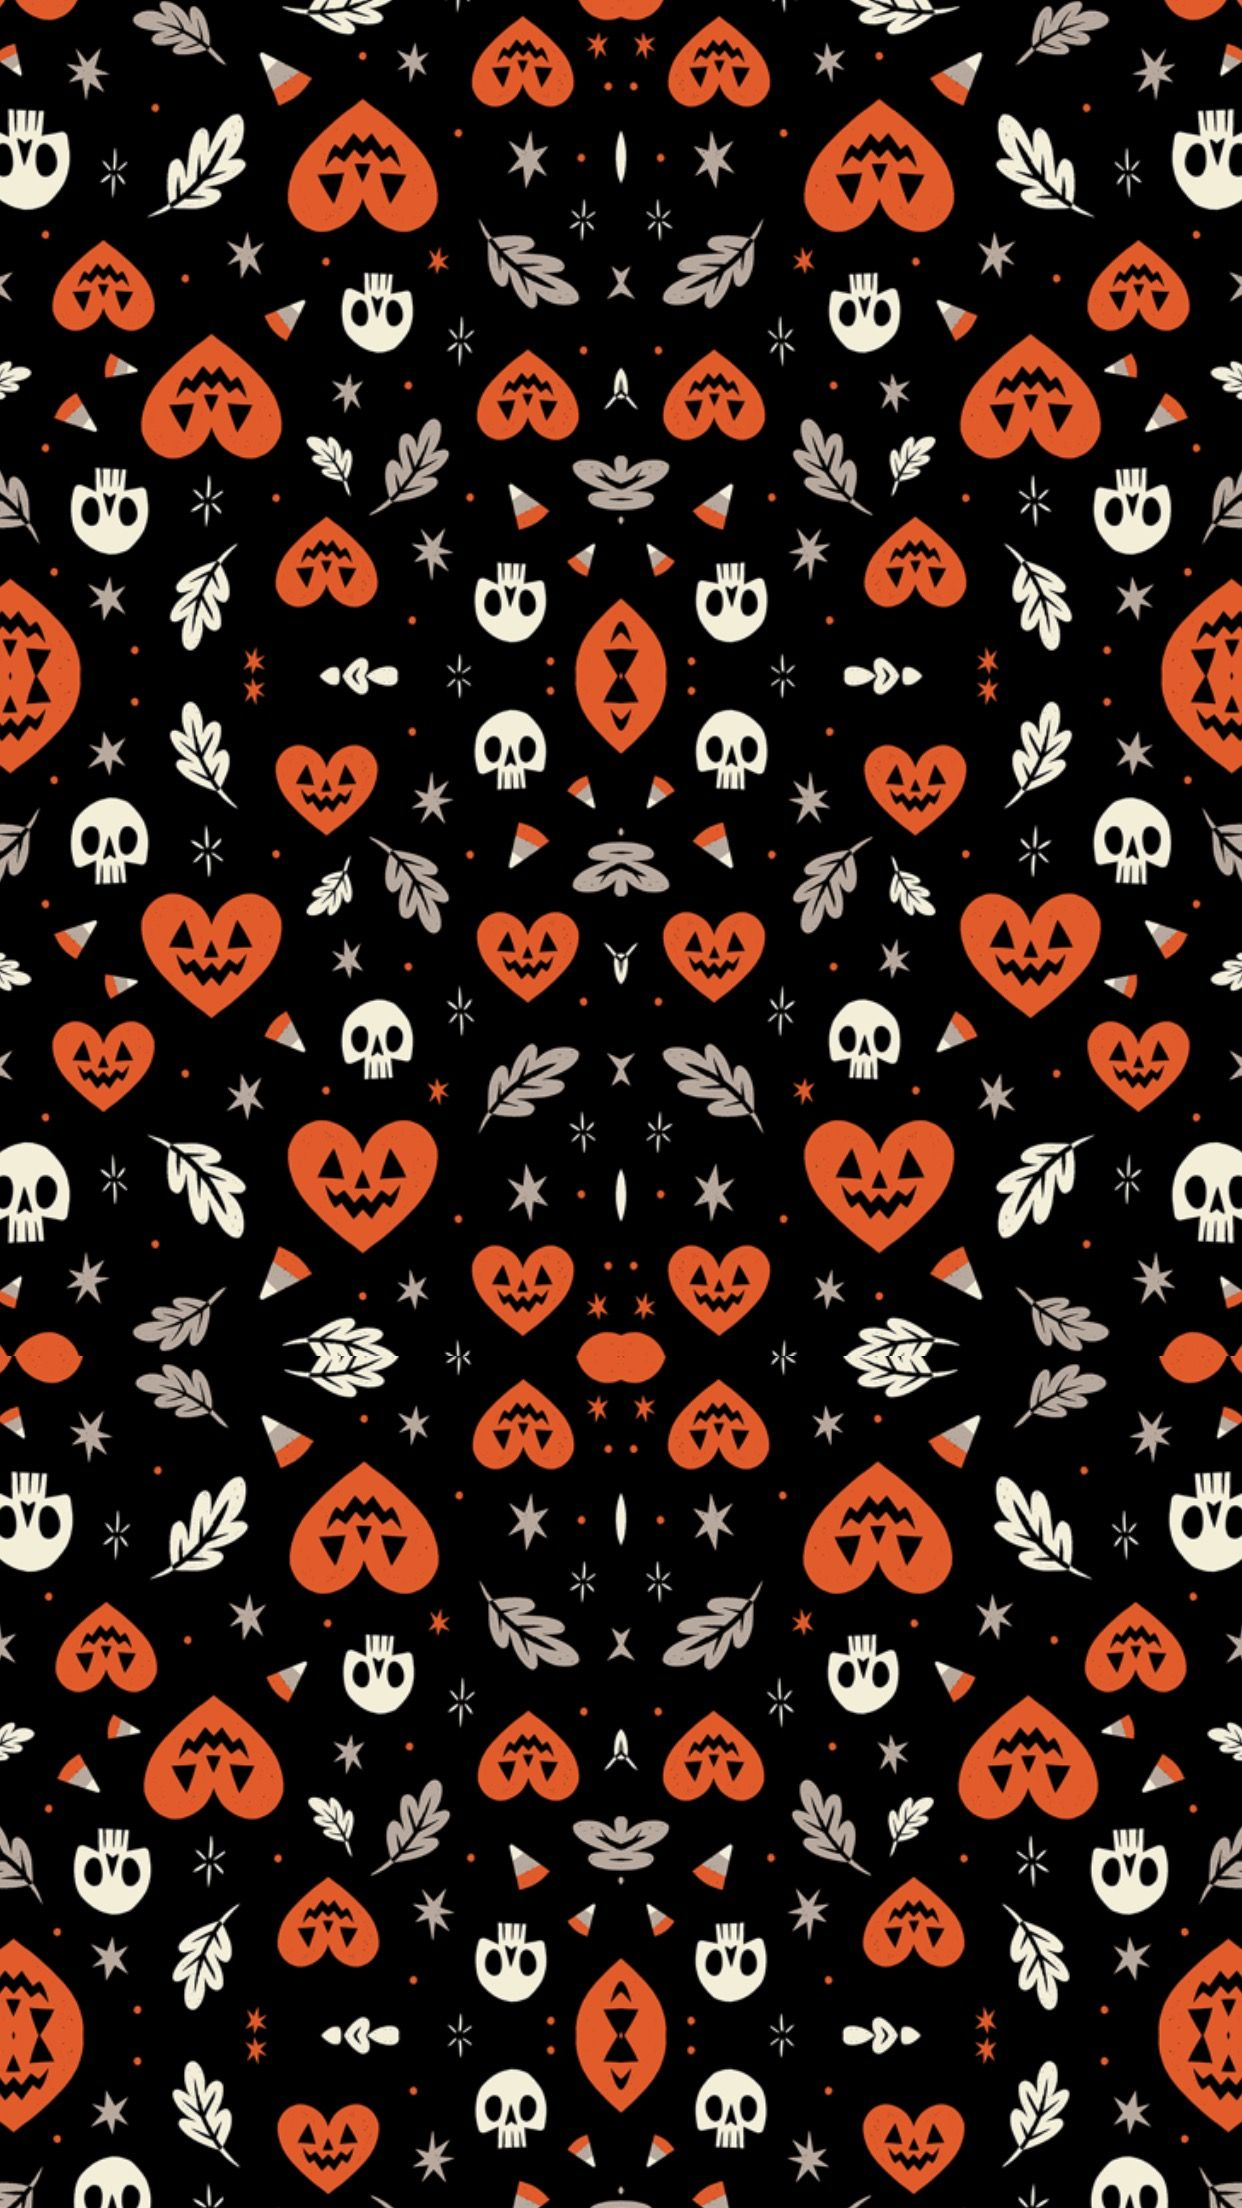 Pin by Amber on Halloween/Fall Halloween wallpaper